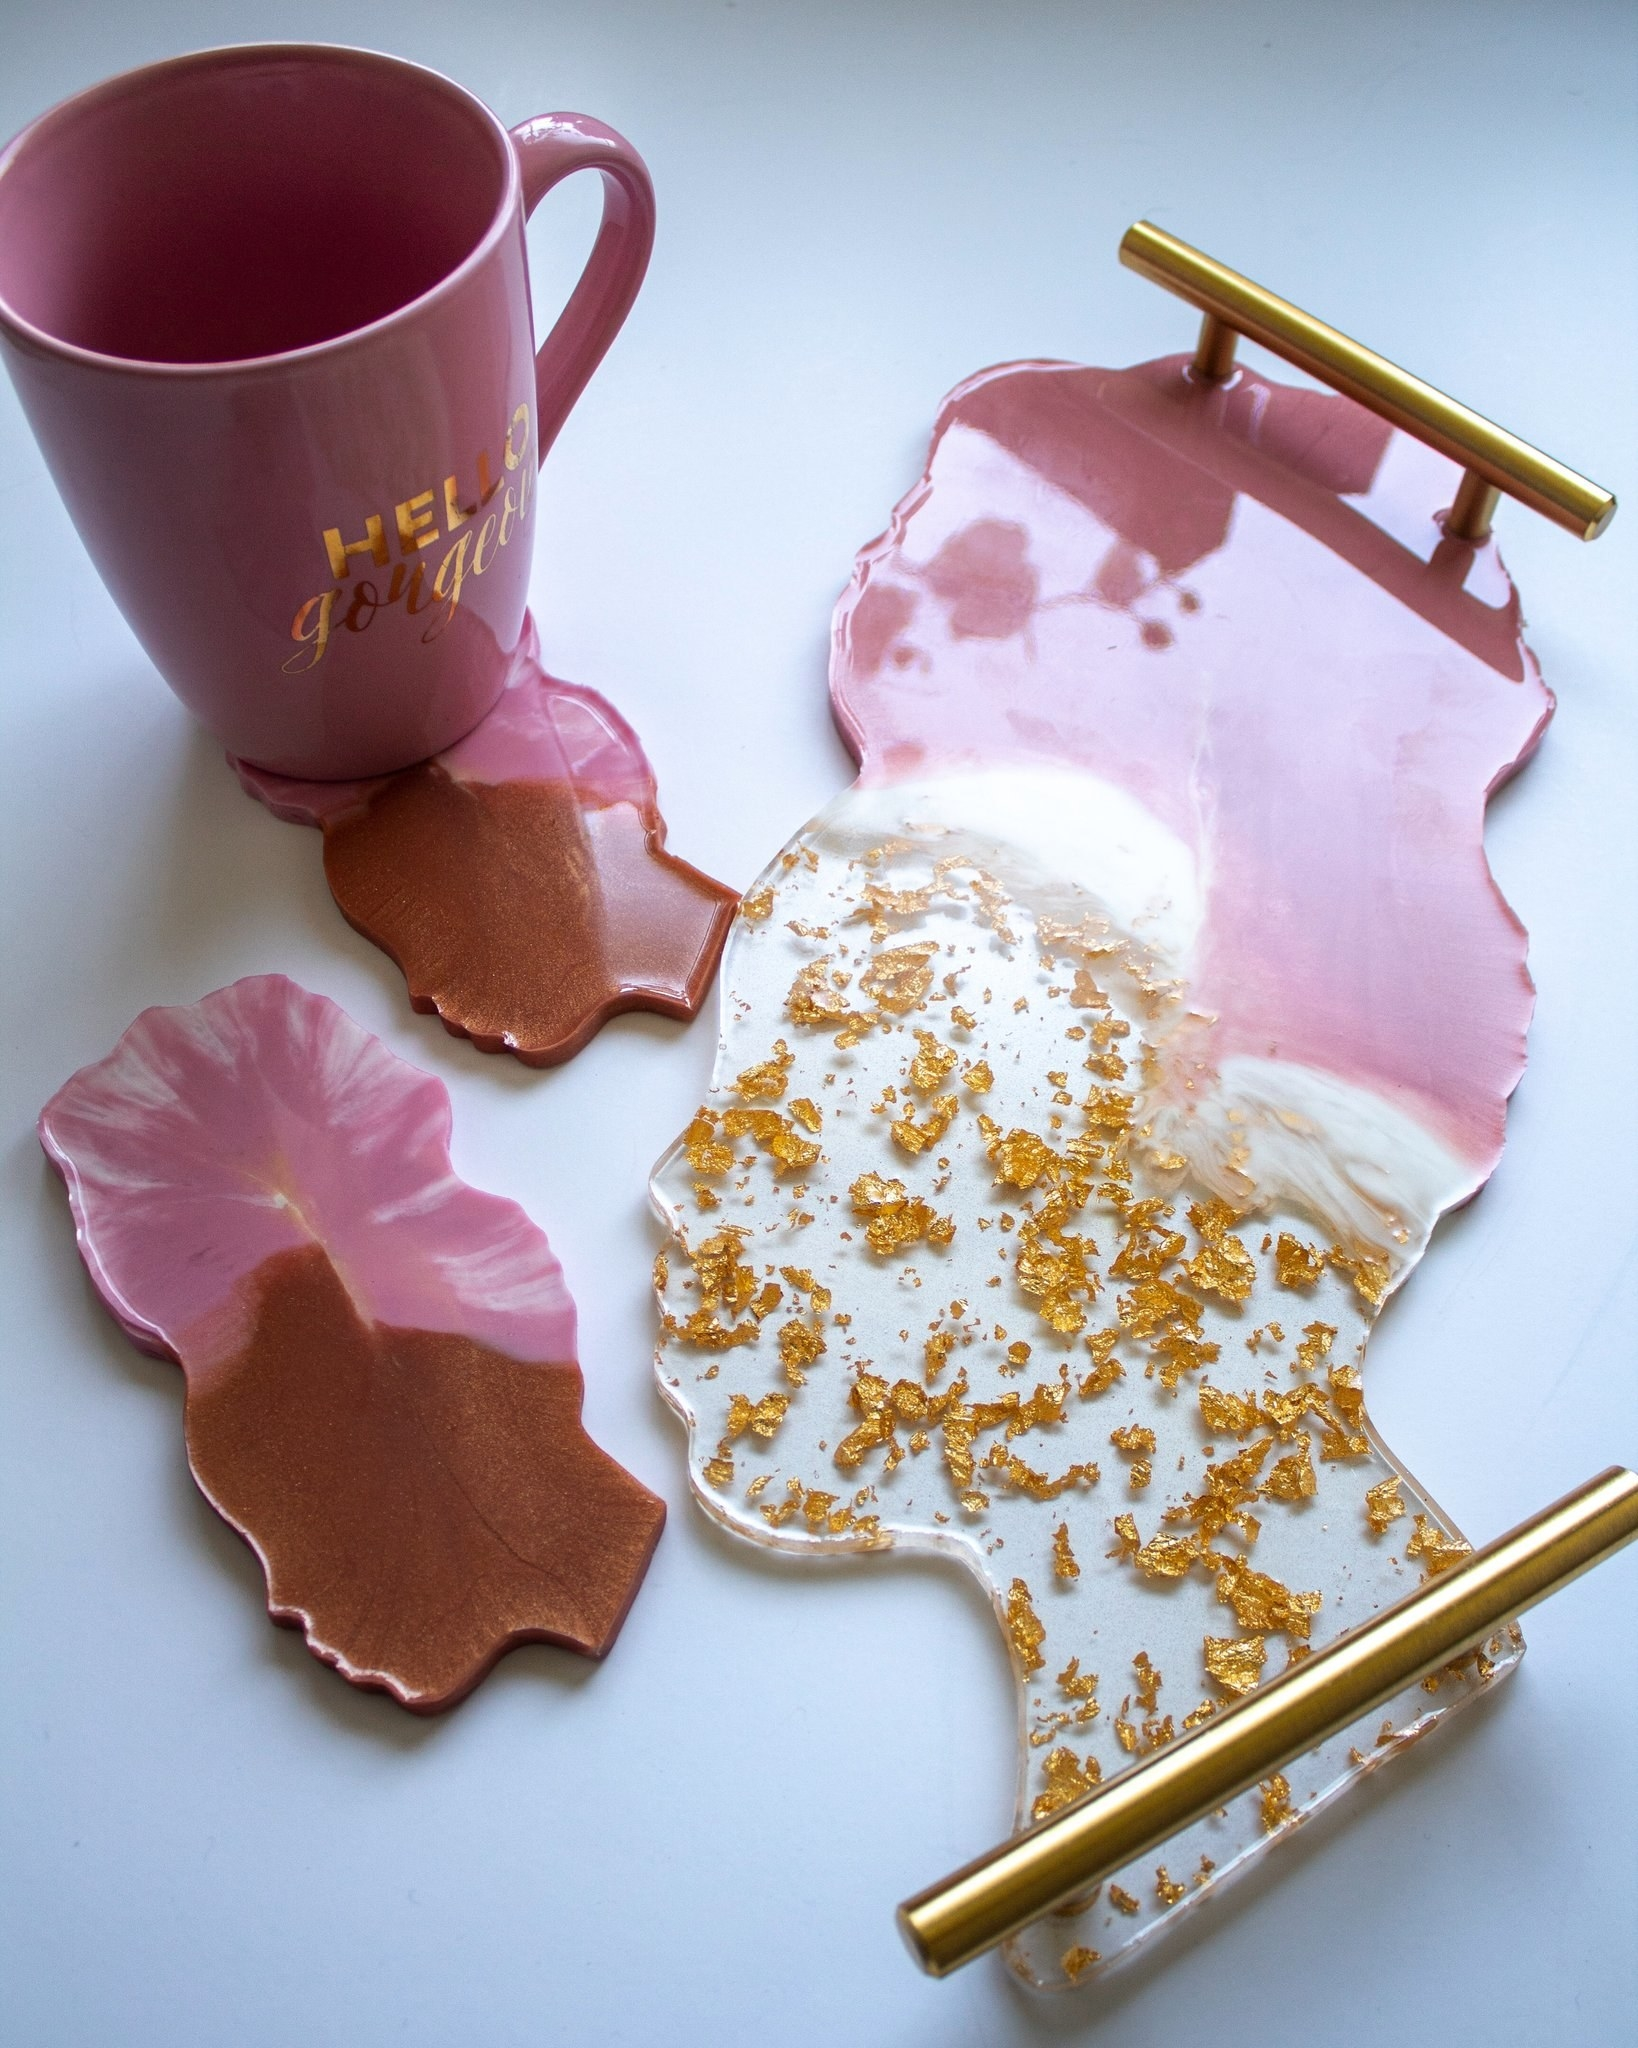 Tray with gold handles and coasters in pink and gold resin, featuring a shape that resembles the side profile of a person wearing a turban